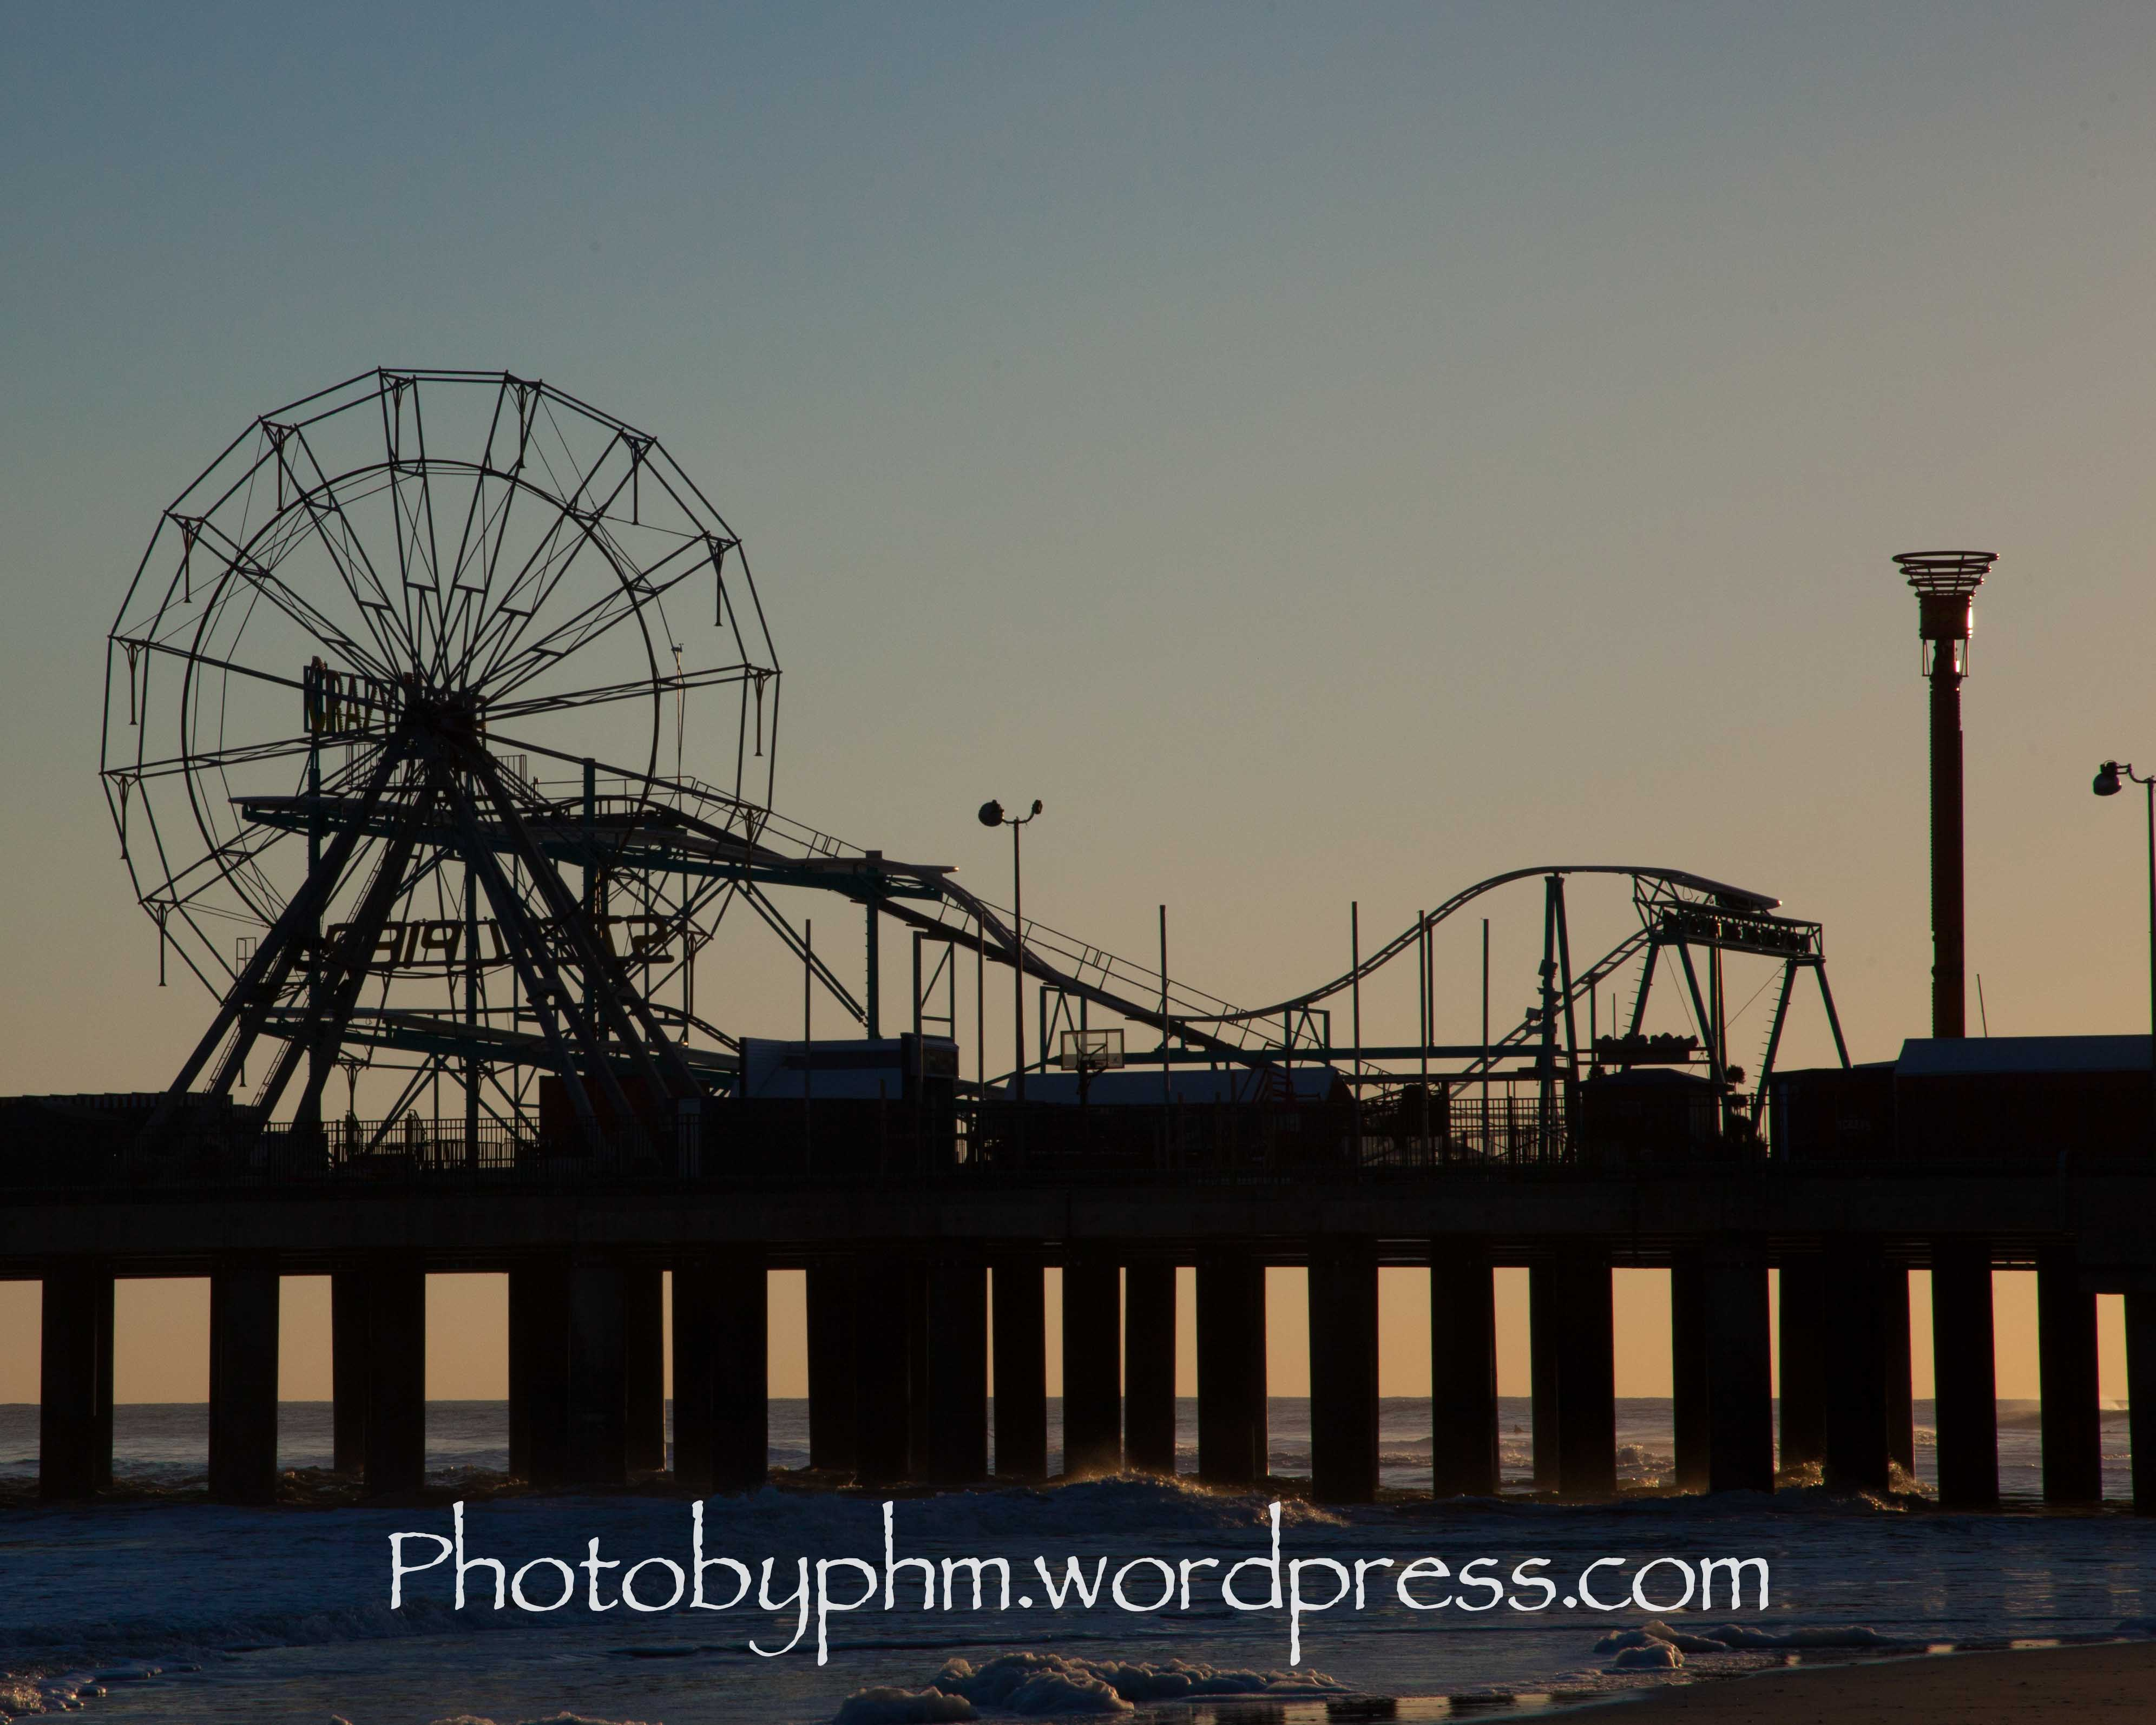 Atlantic City Steel Pier Philip Meier Photography